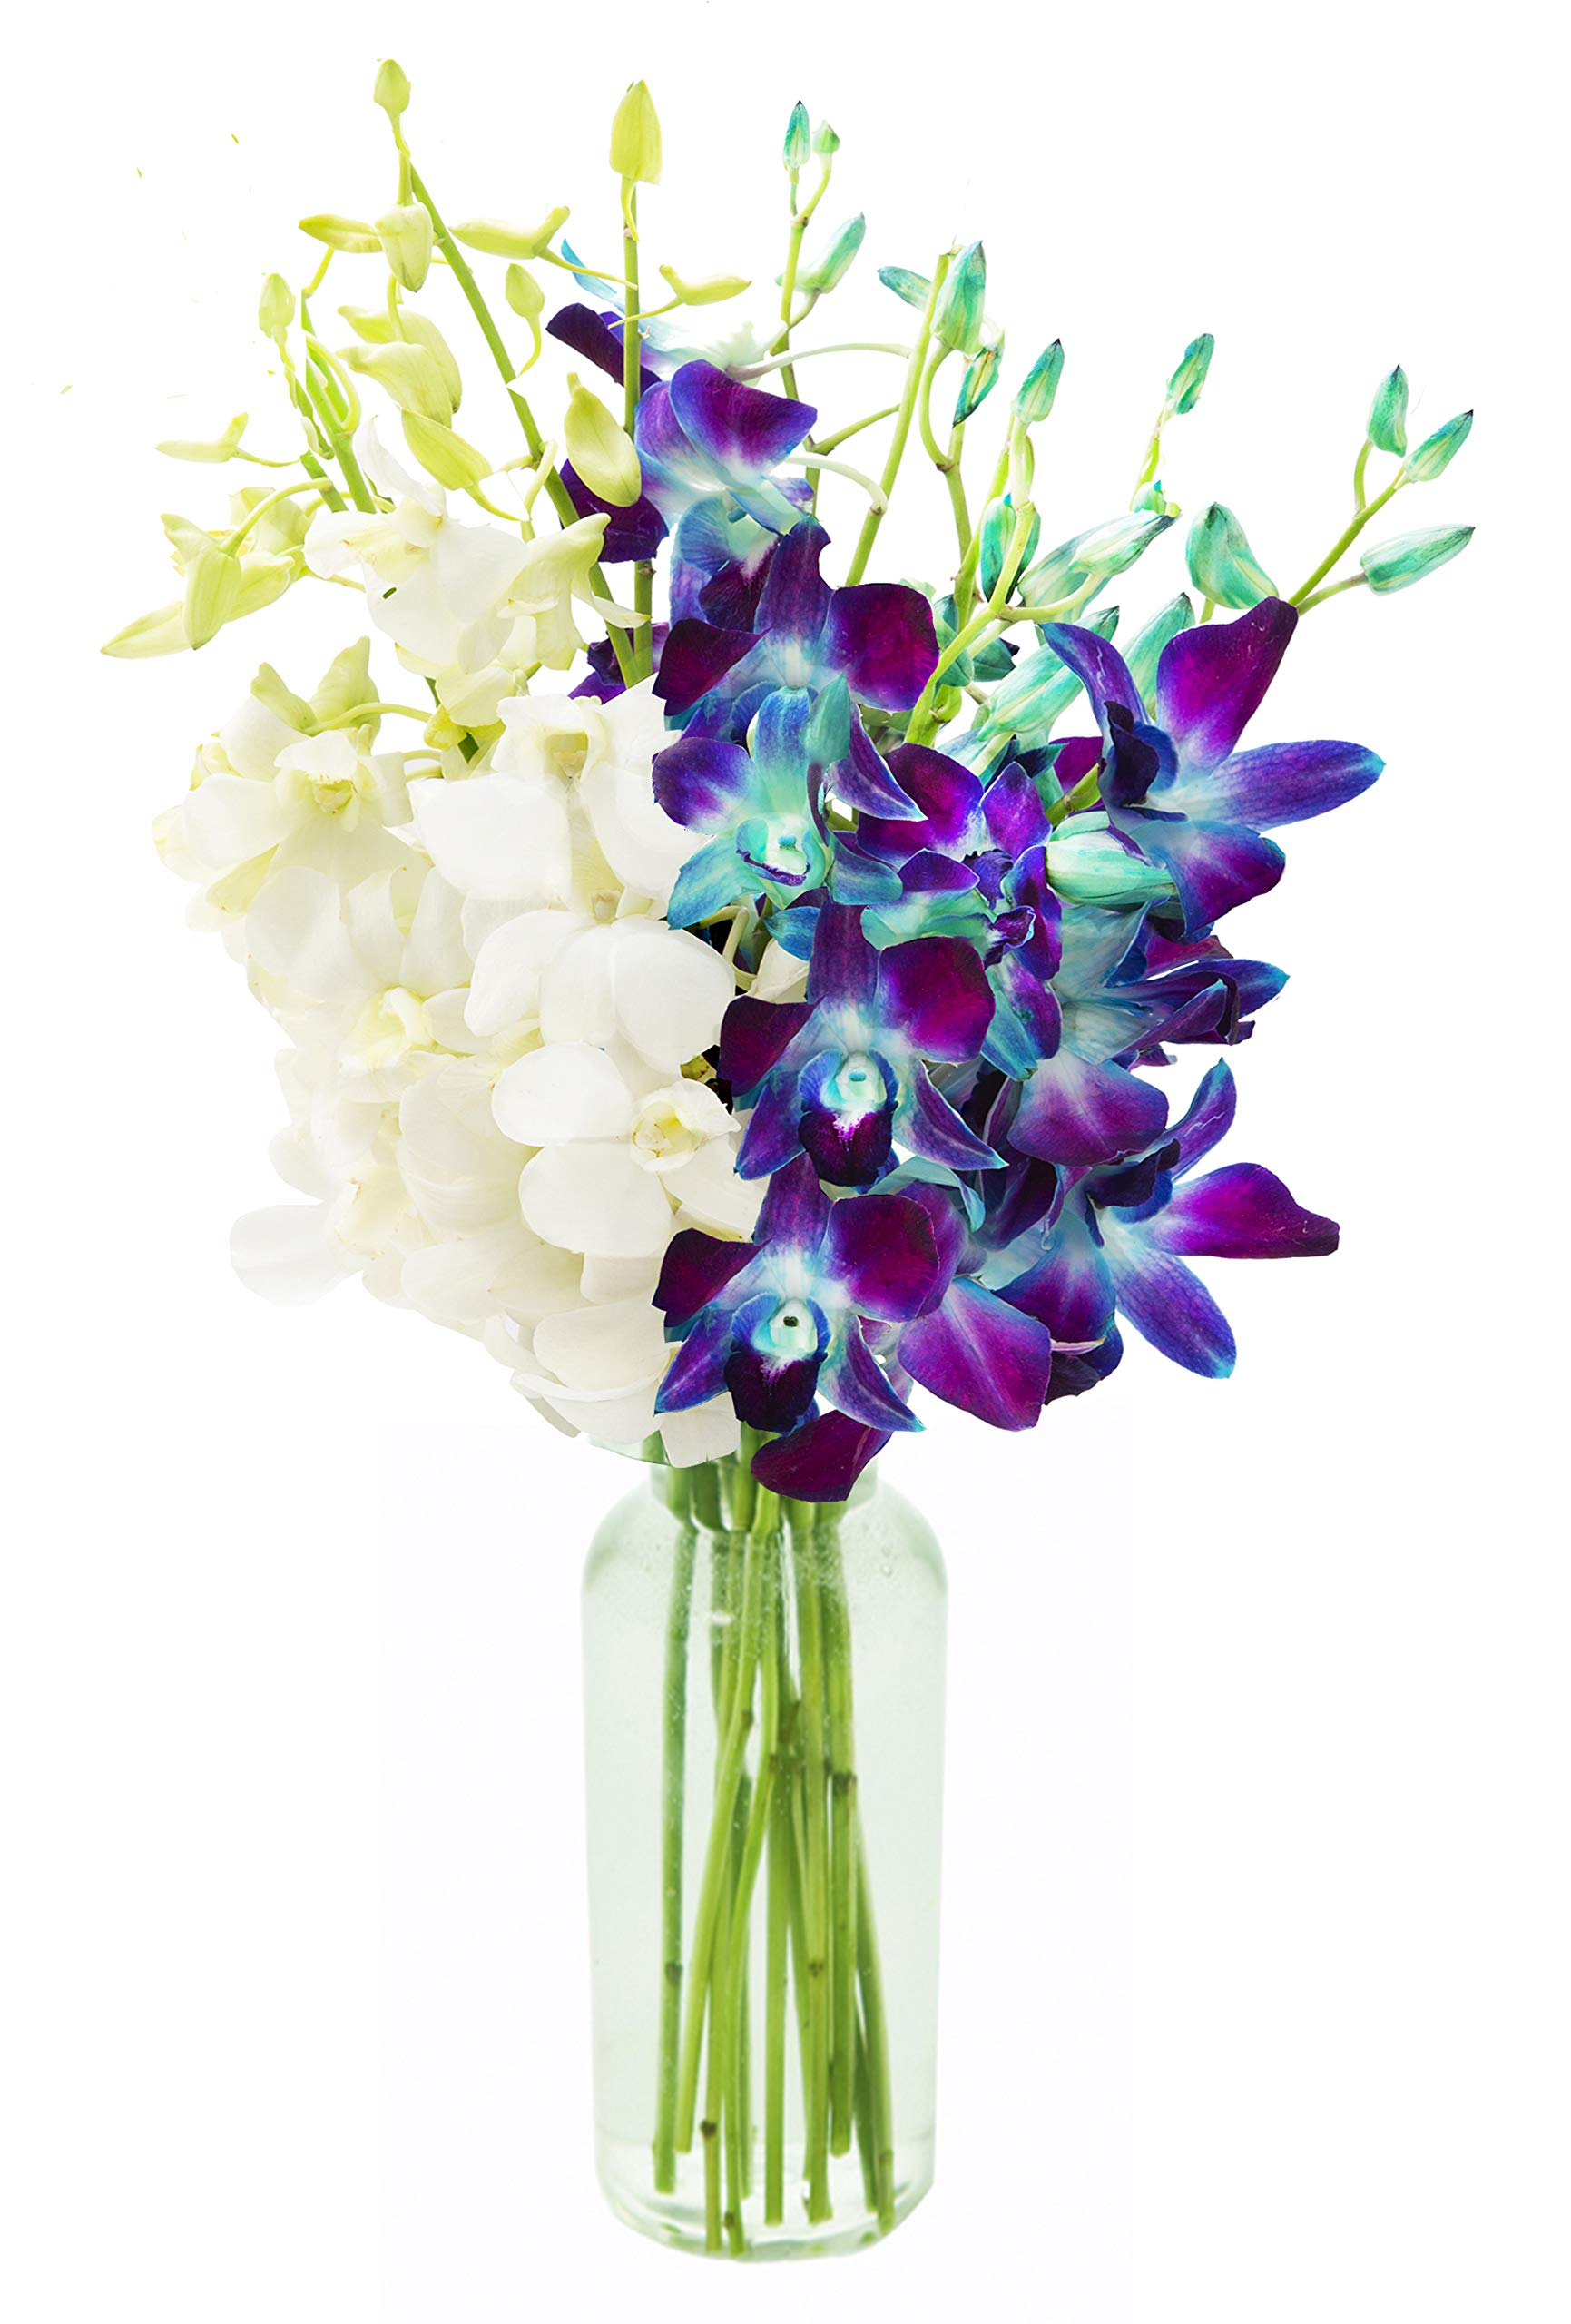 KaBloom Starry Night in the Tropics Bouquet of Blue and White Orchids from Thailand with Vase by KaBloom